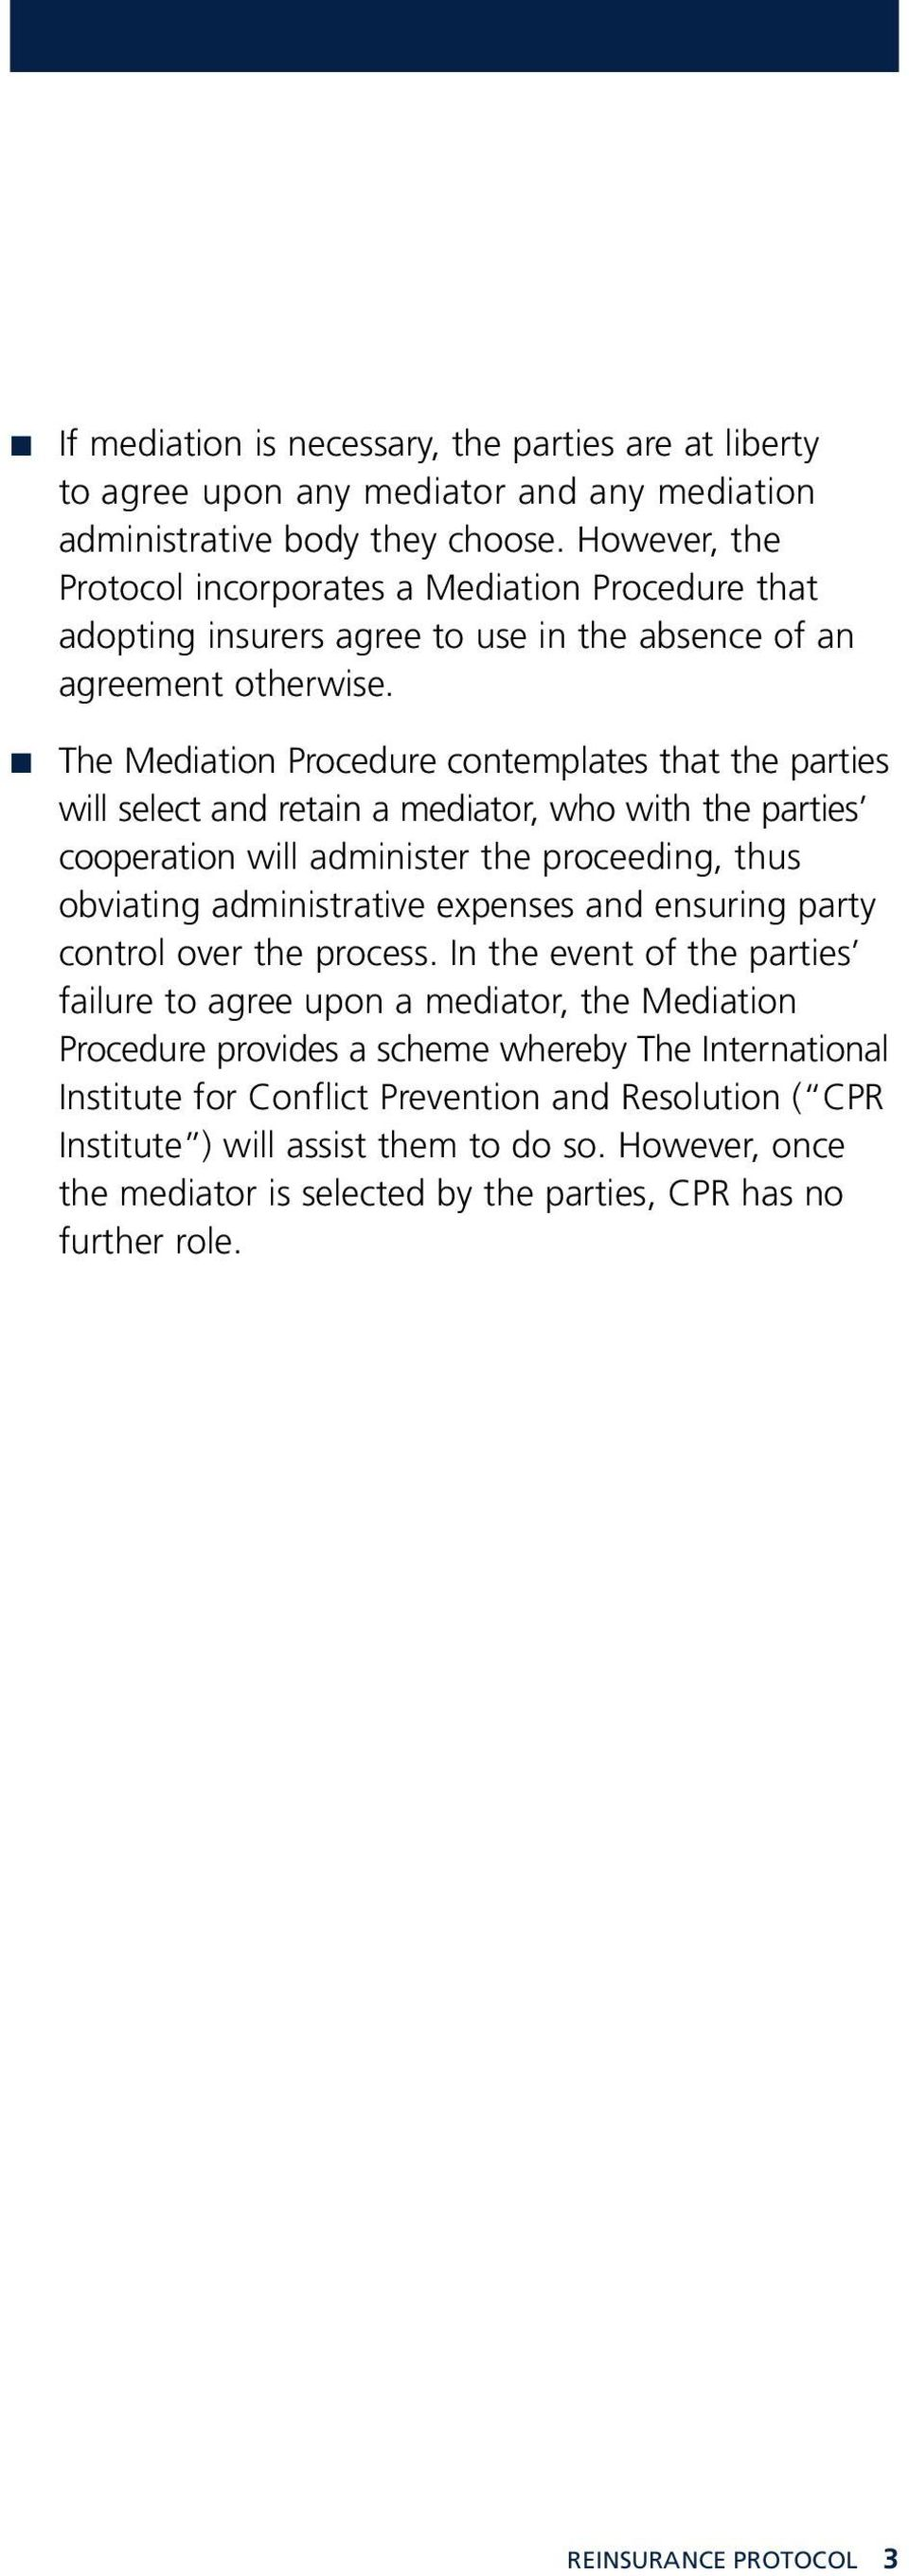 The Mediation Procedure contemplates that the parties will select and retain a mediator, who with the parties cooperation will administer the proceeding, thus obviating administrative expenses and